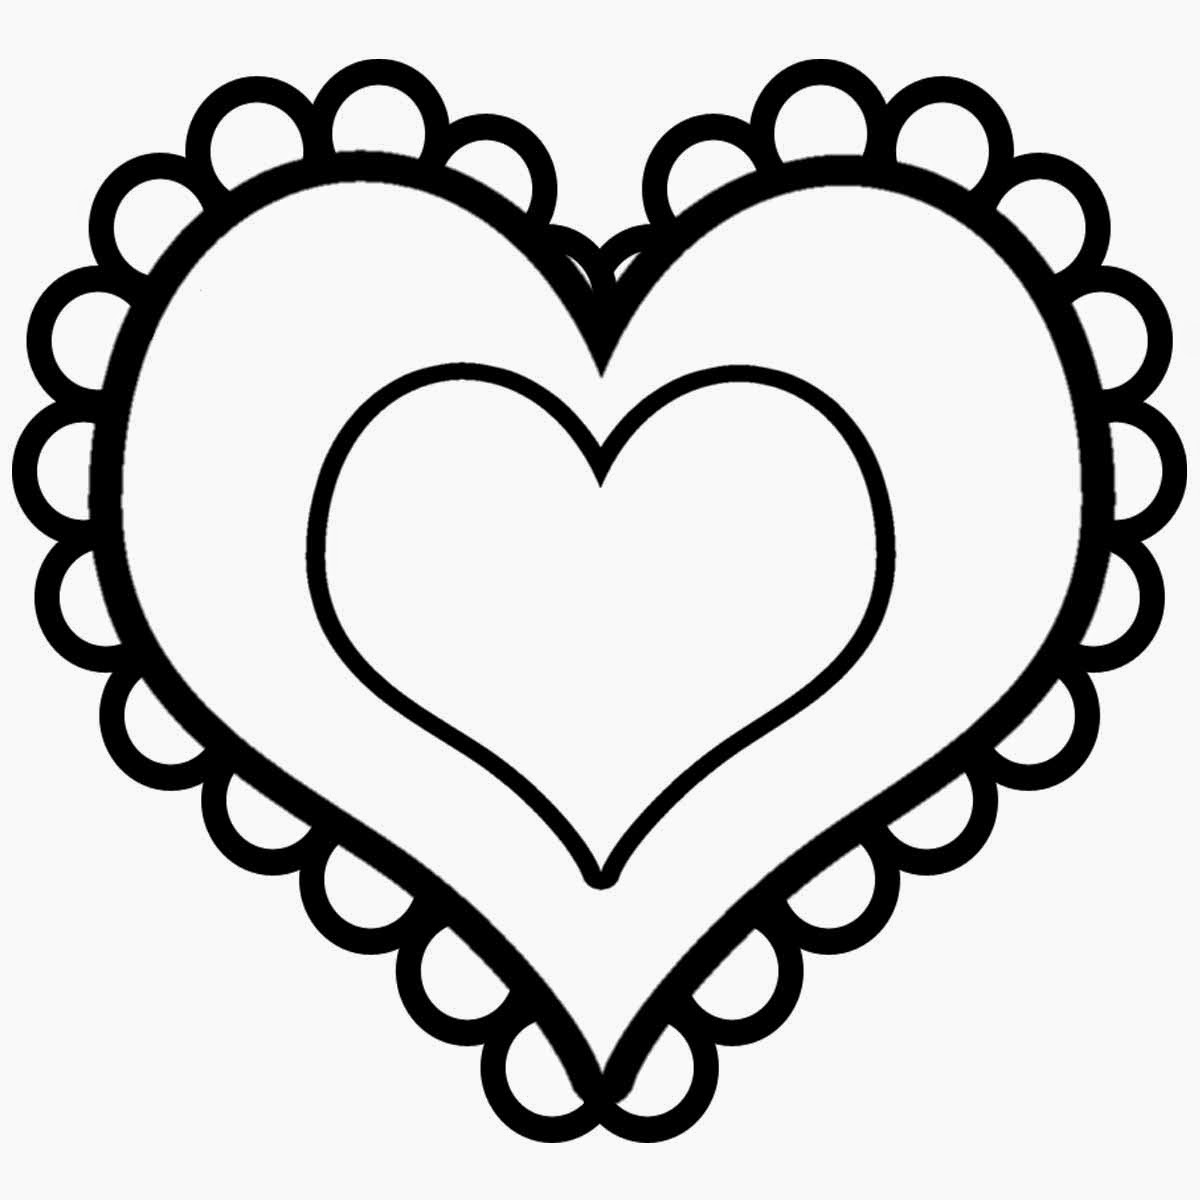 coloring pictures of hearts hearts coloring pages coloring of pictures hearts